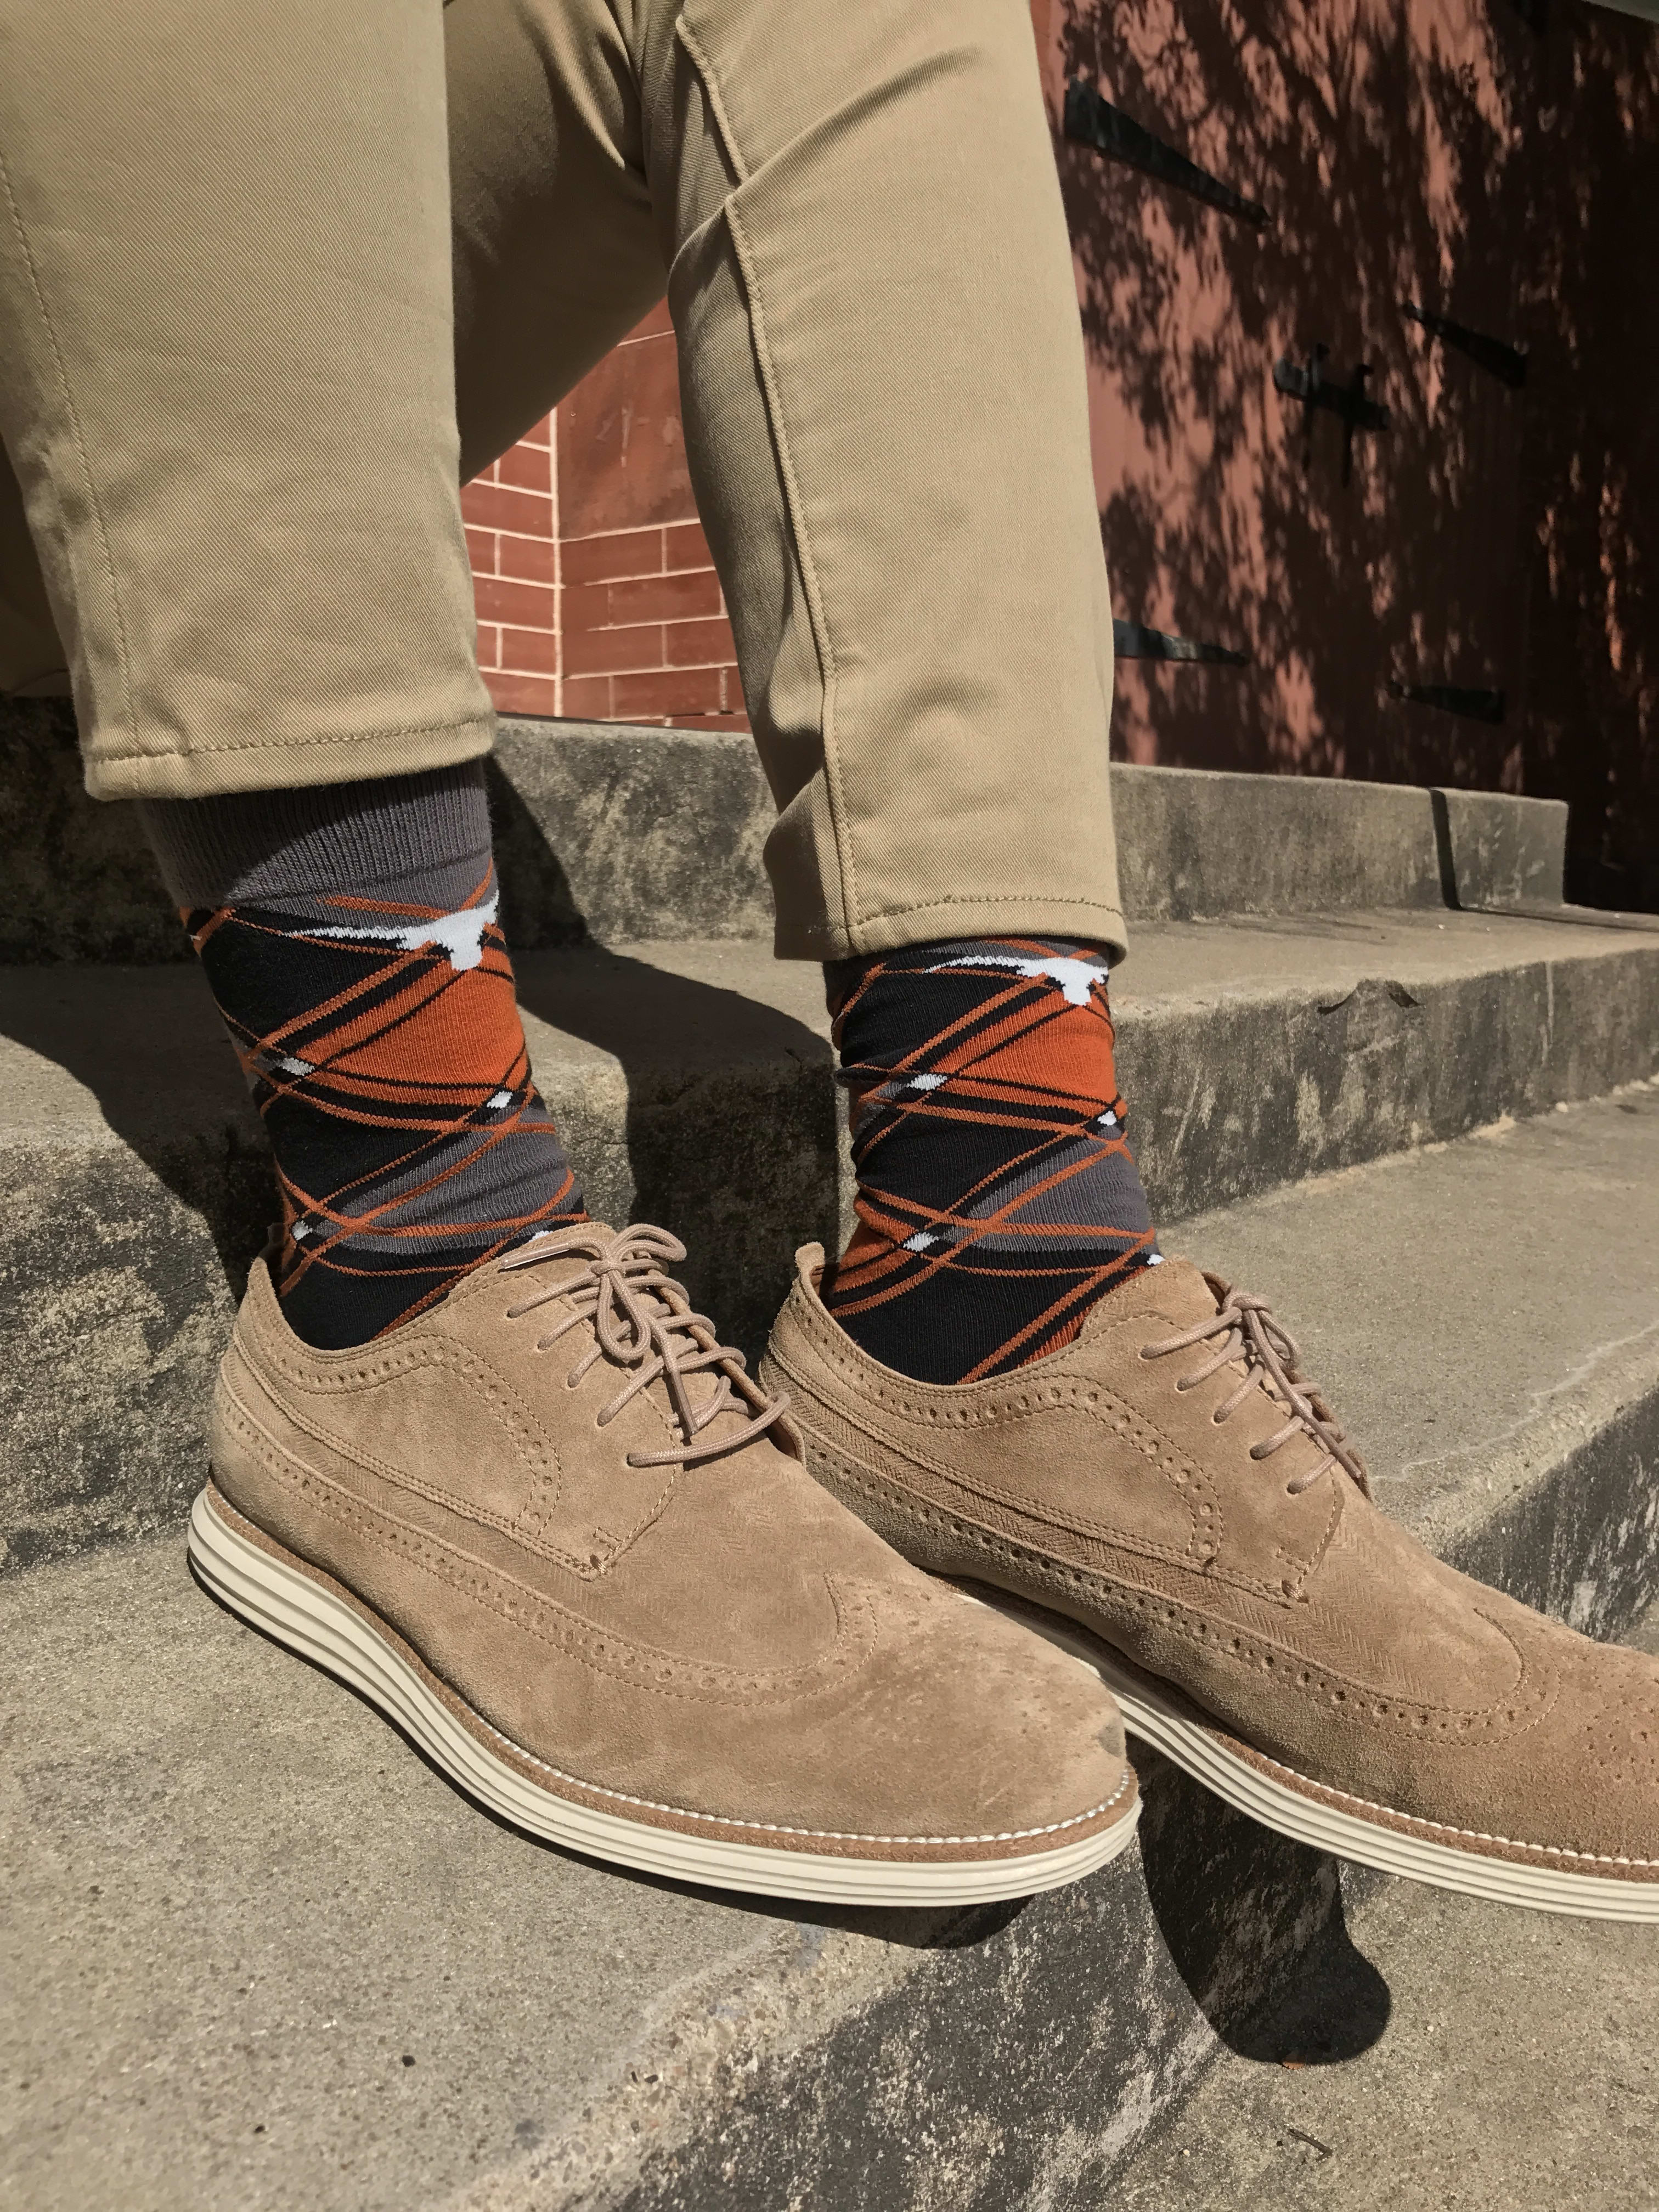 Contributions of $18.83 or more will receive a pair of UT socks!